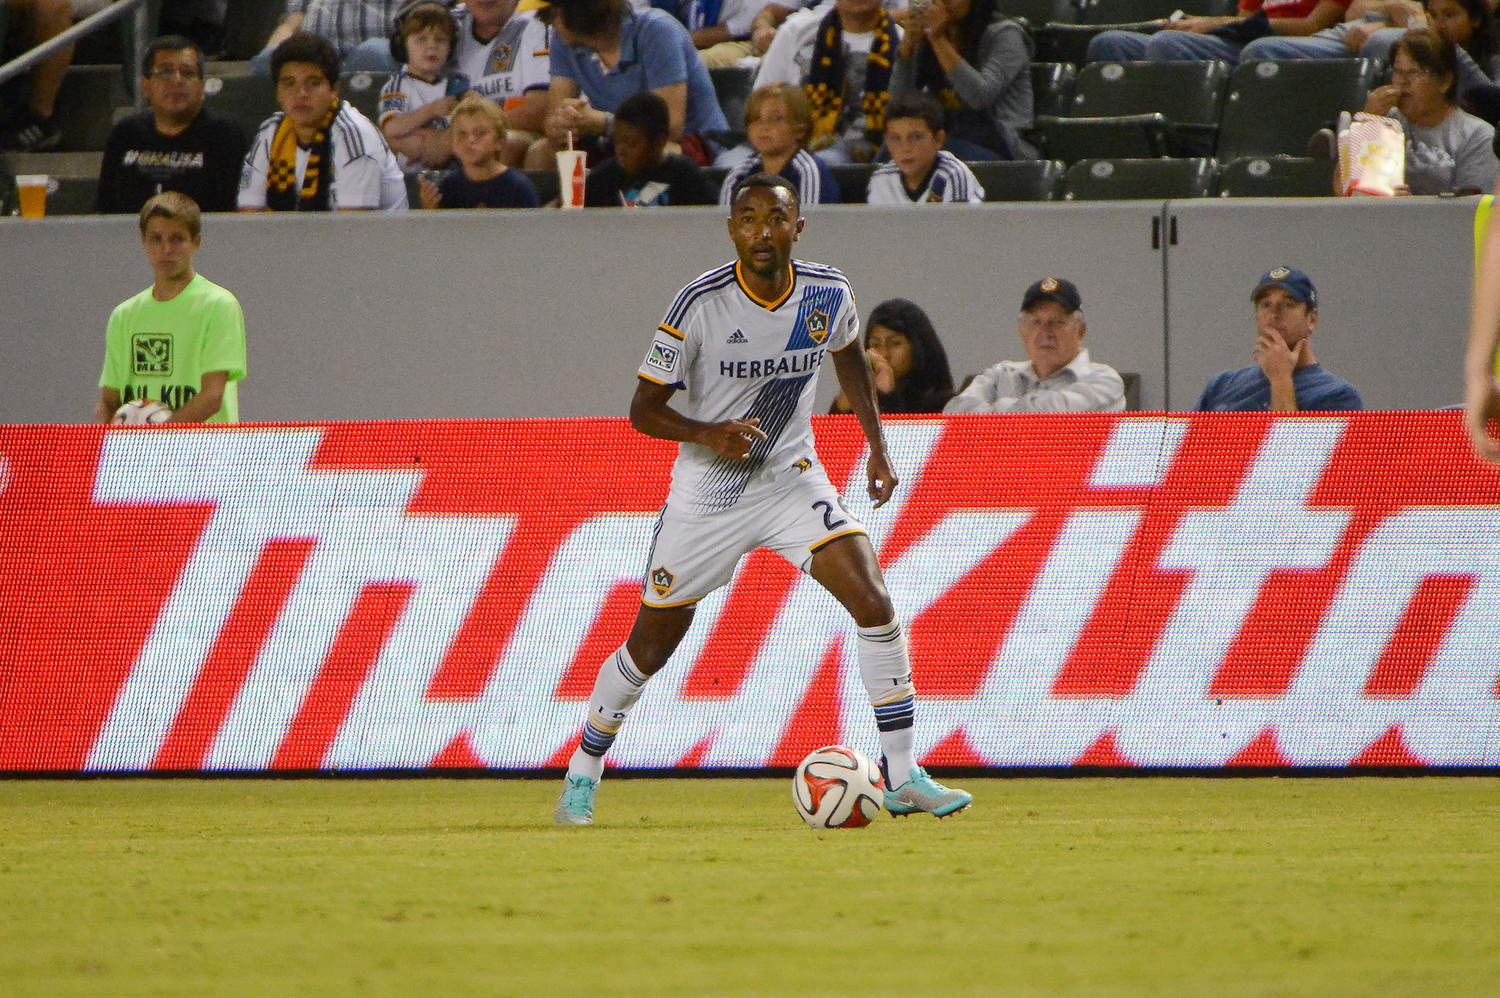 LA Galaxy v Toronto FC at StubHub Center on October 4, 2014 in Carson, CA. Photo by Mora/LA Galaxy.